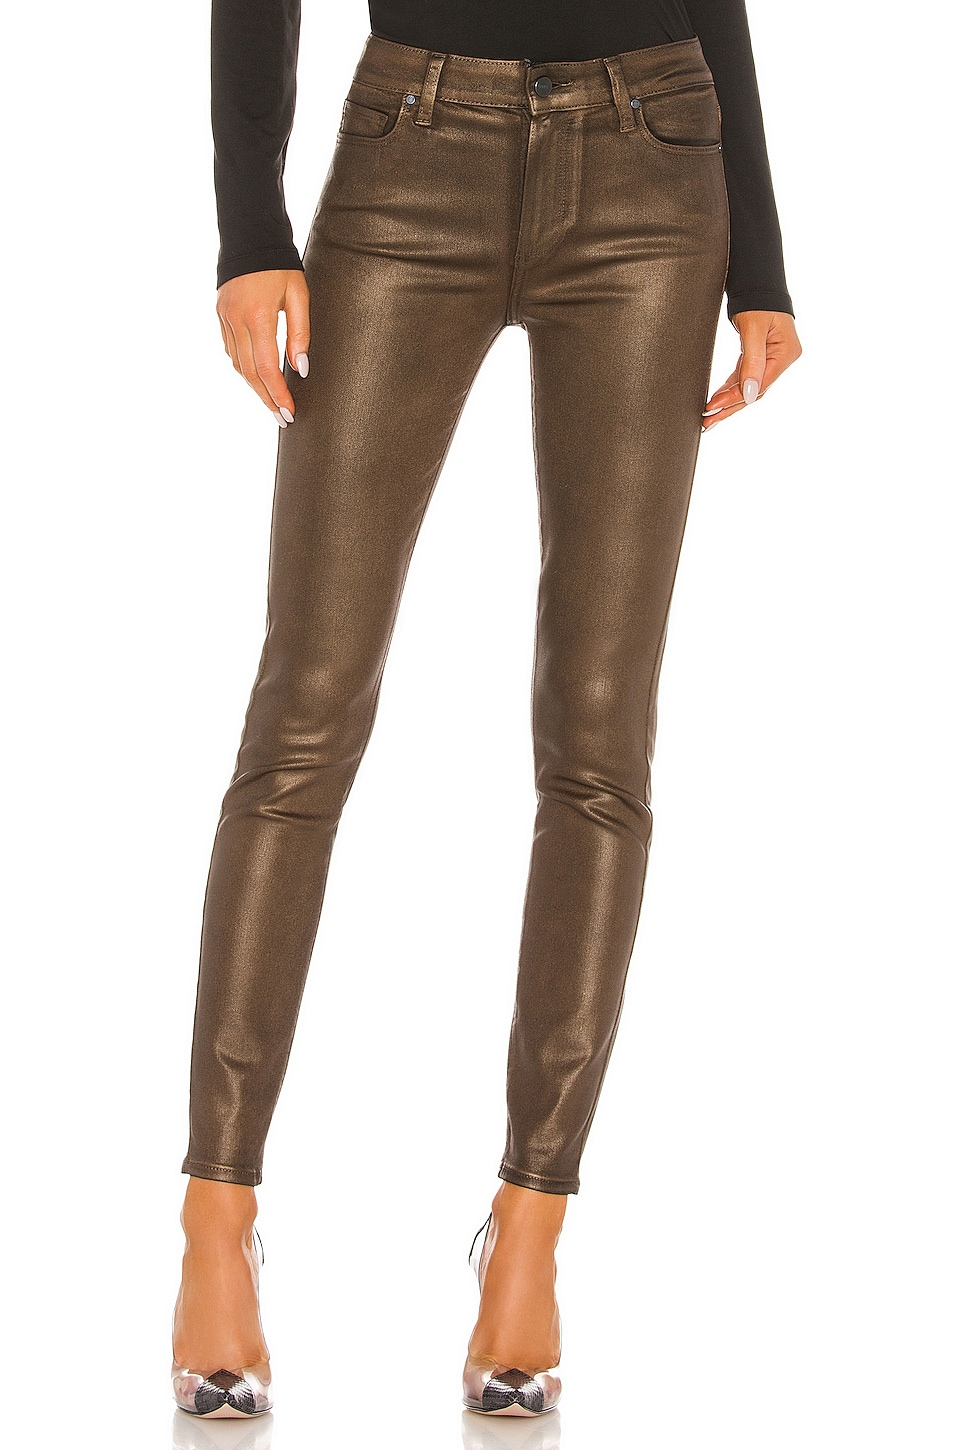 PAIGE Hoxton Coated Ultra Skinny in Pearlized Copper Coating